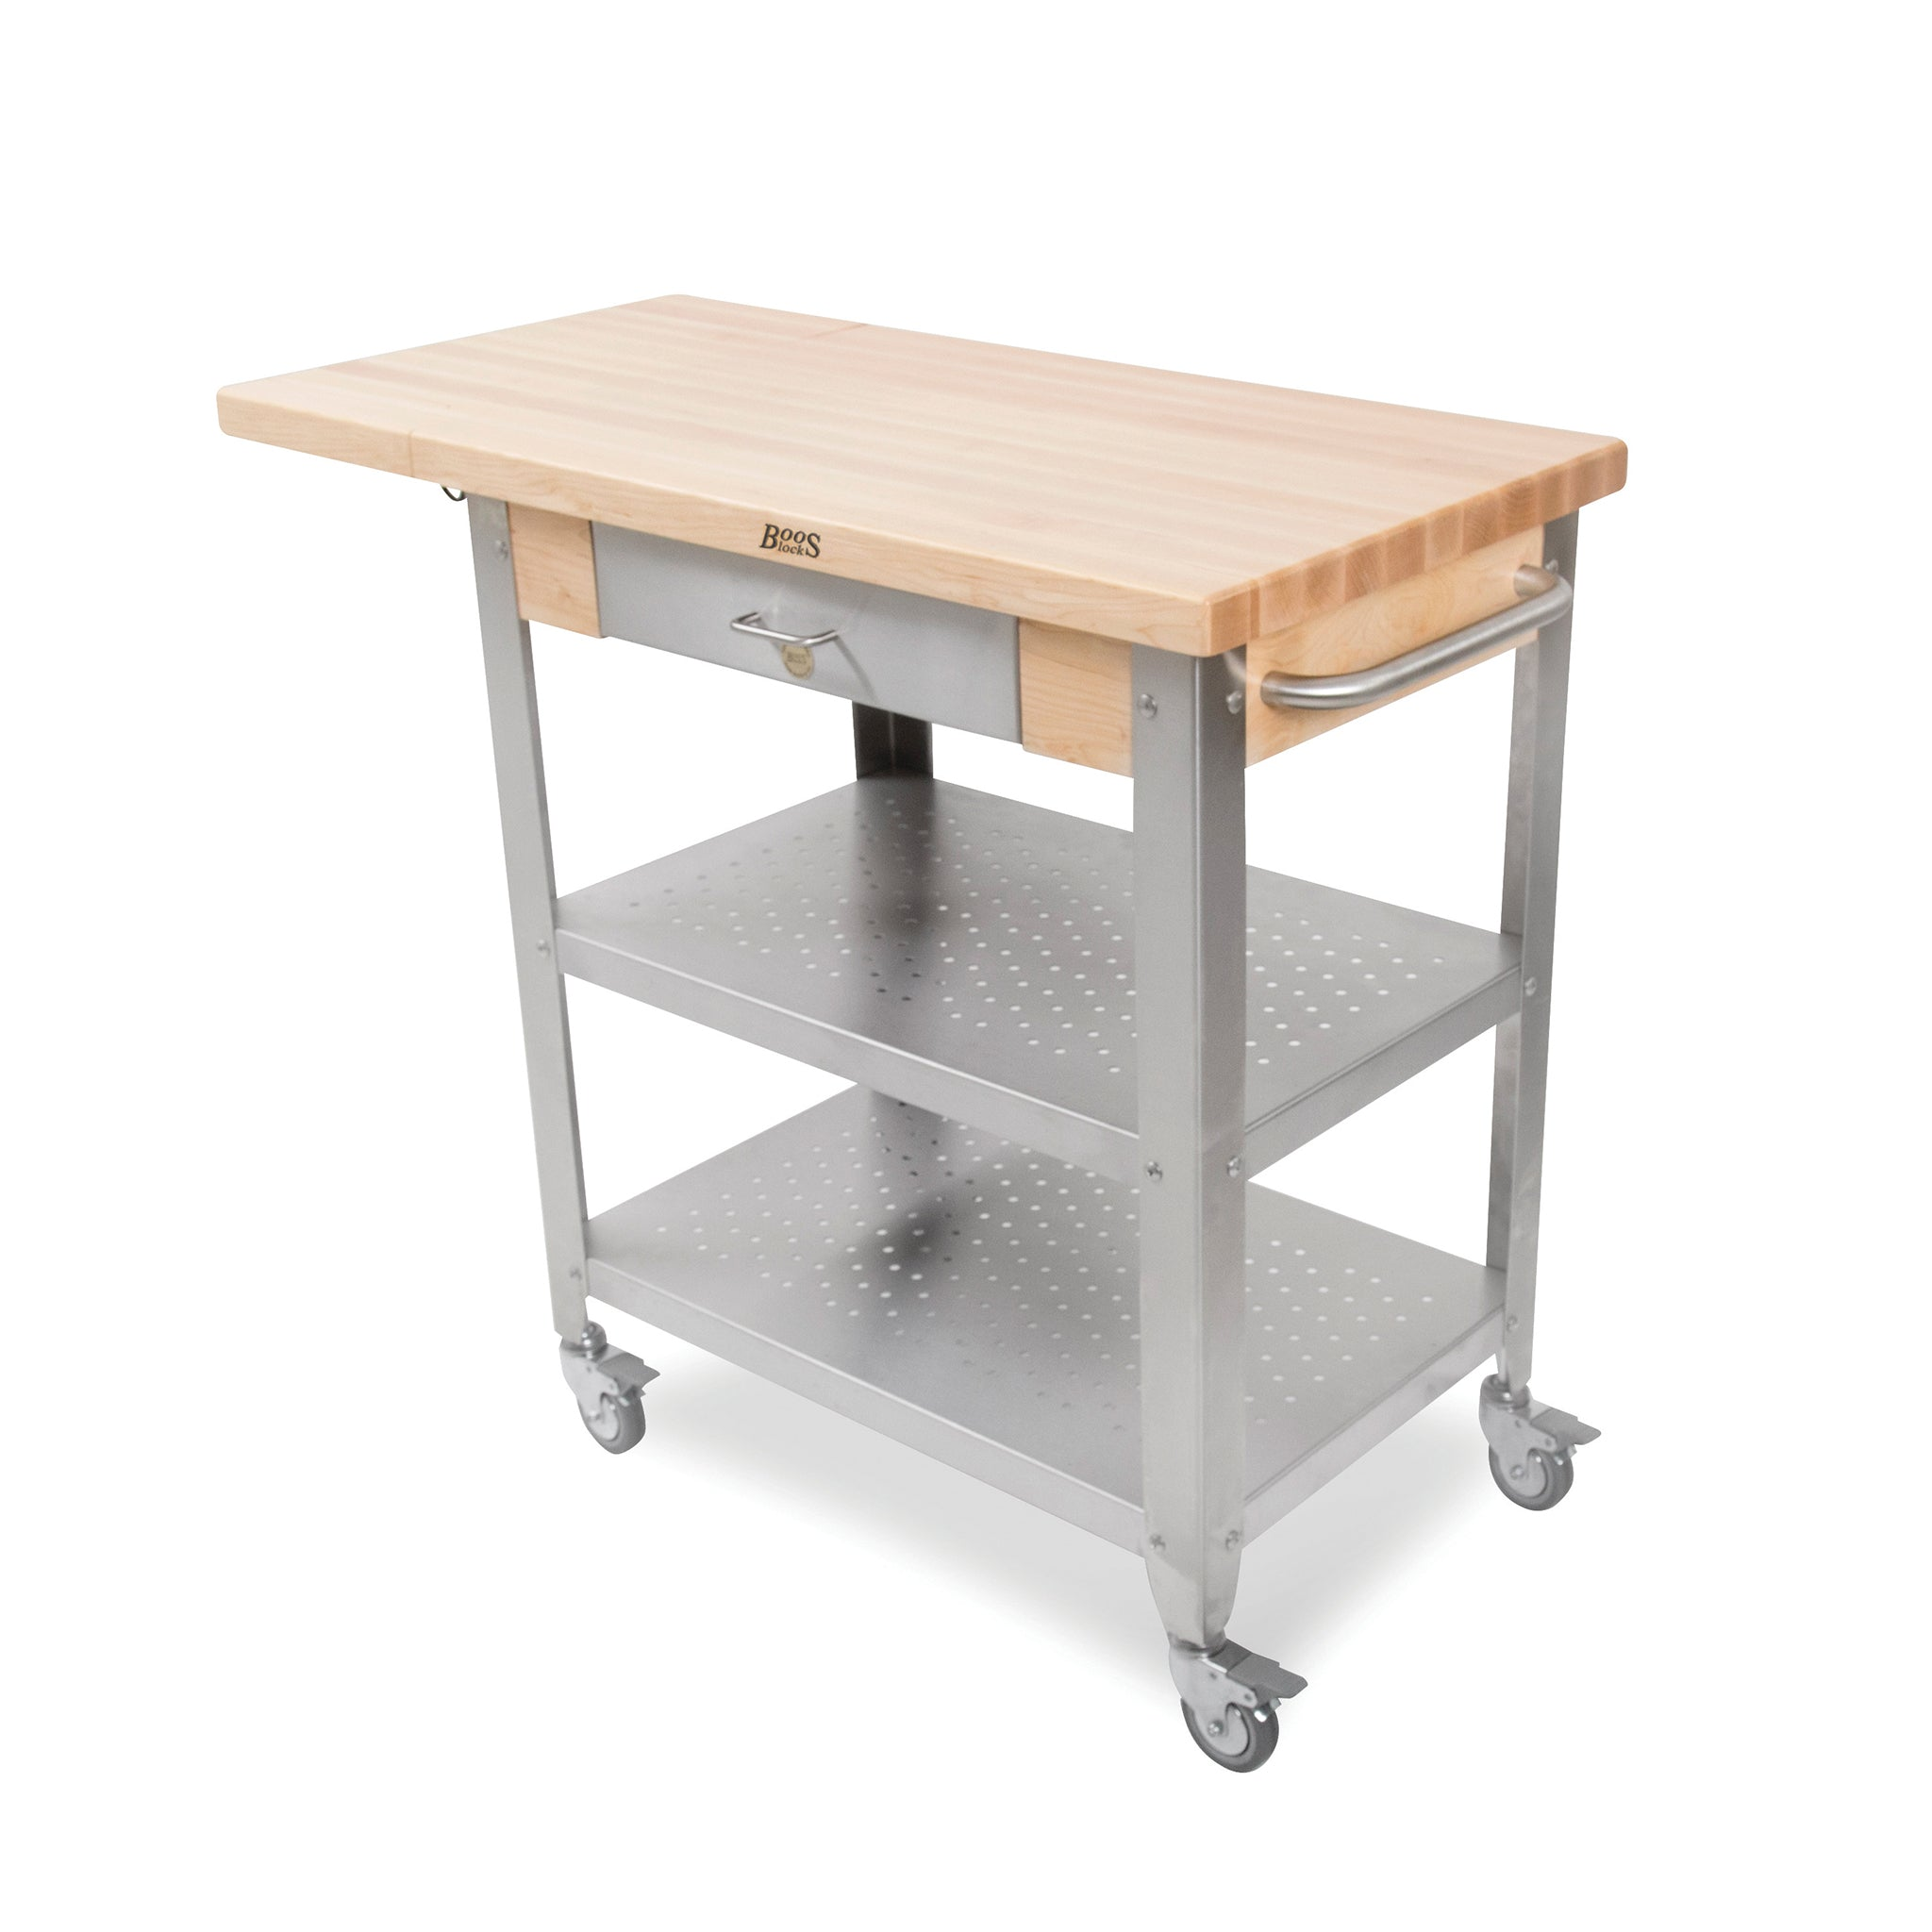 "Cucina 4 X 4 cucina elegante kitchen cart 40-3/4"" x 20"""